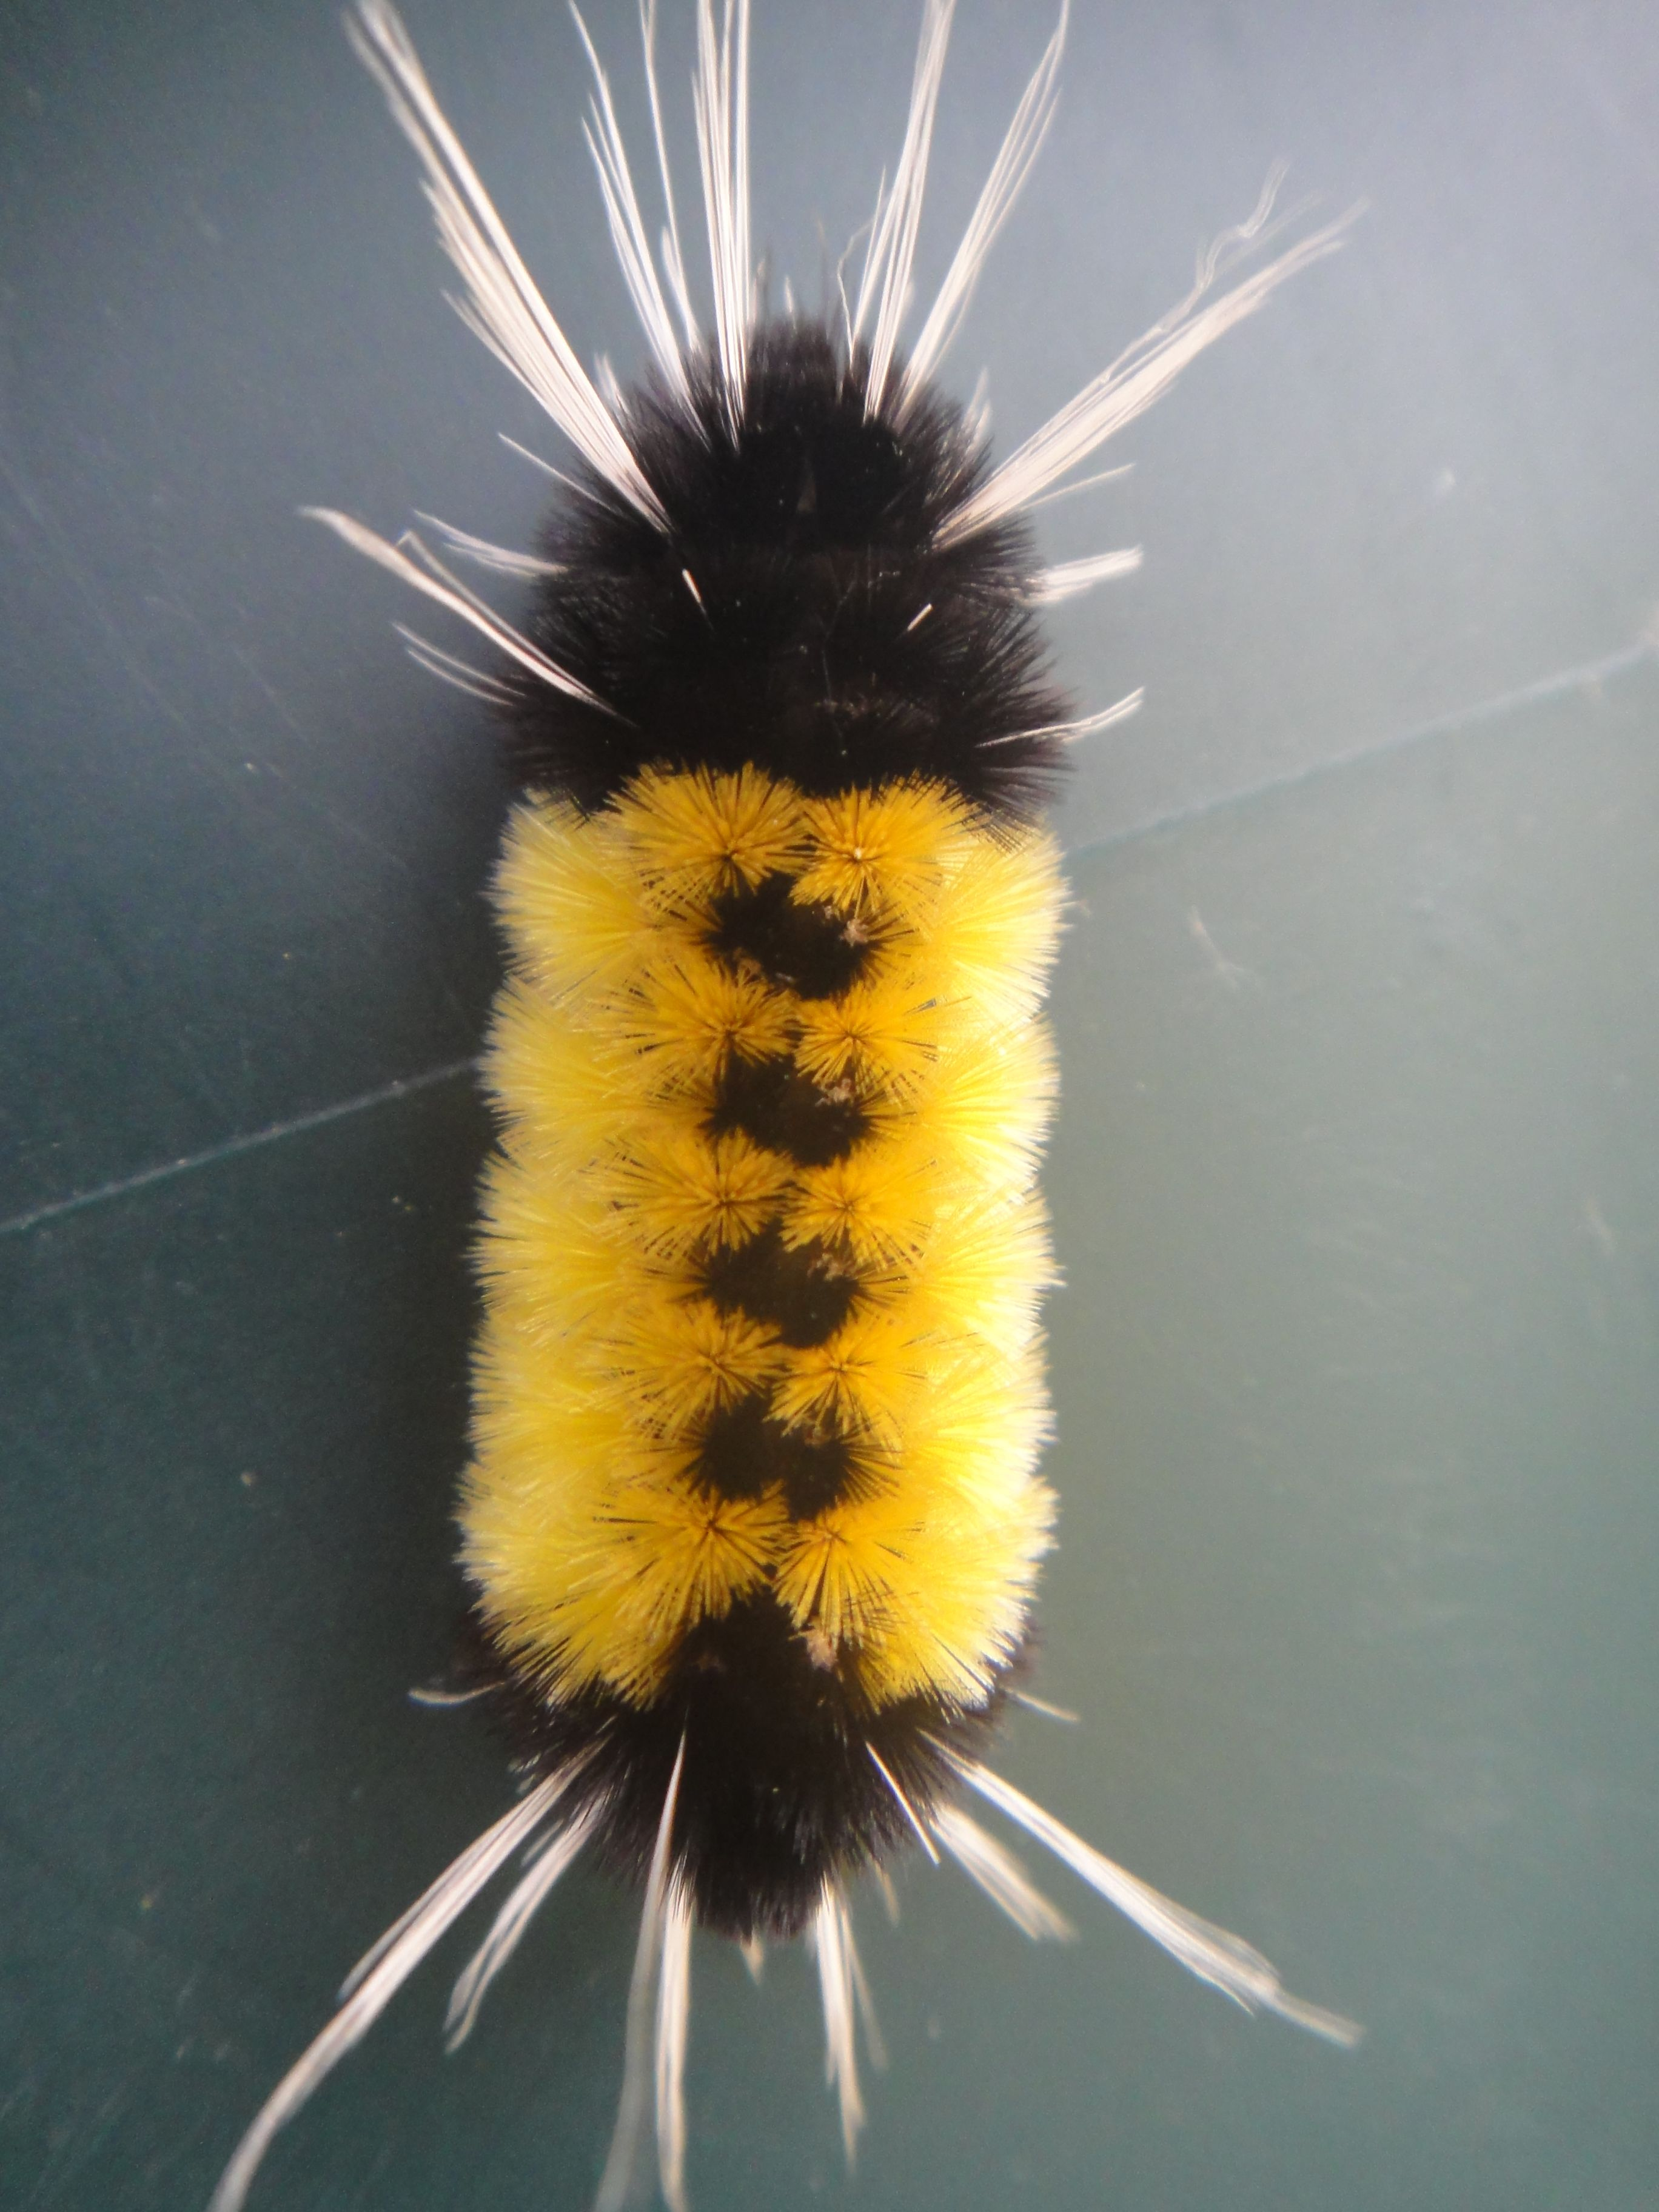 I Love Fuzzy Caterpillars And This Is One Of My Favorites Bugs And Insects Cool Insects Beautiful Bugs